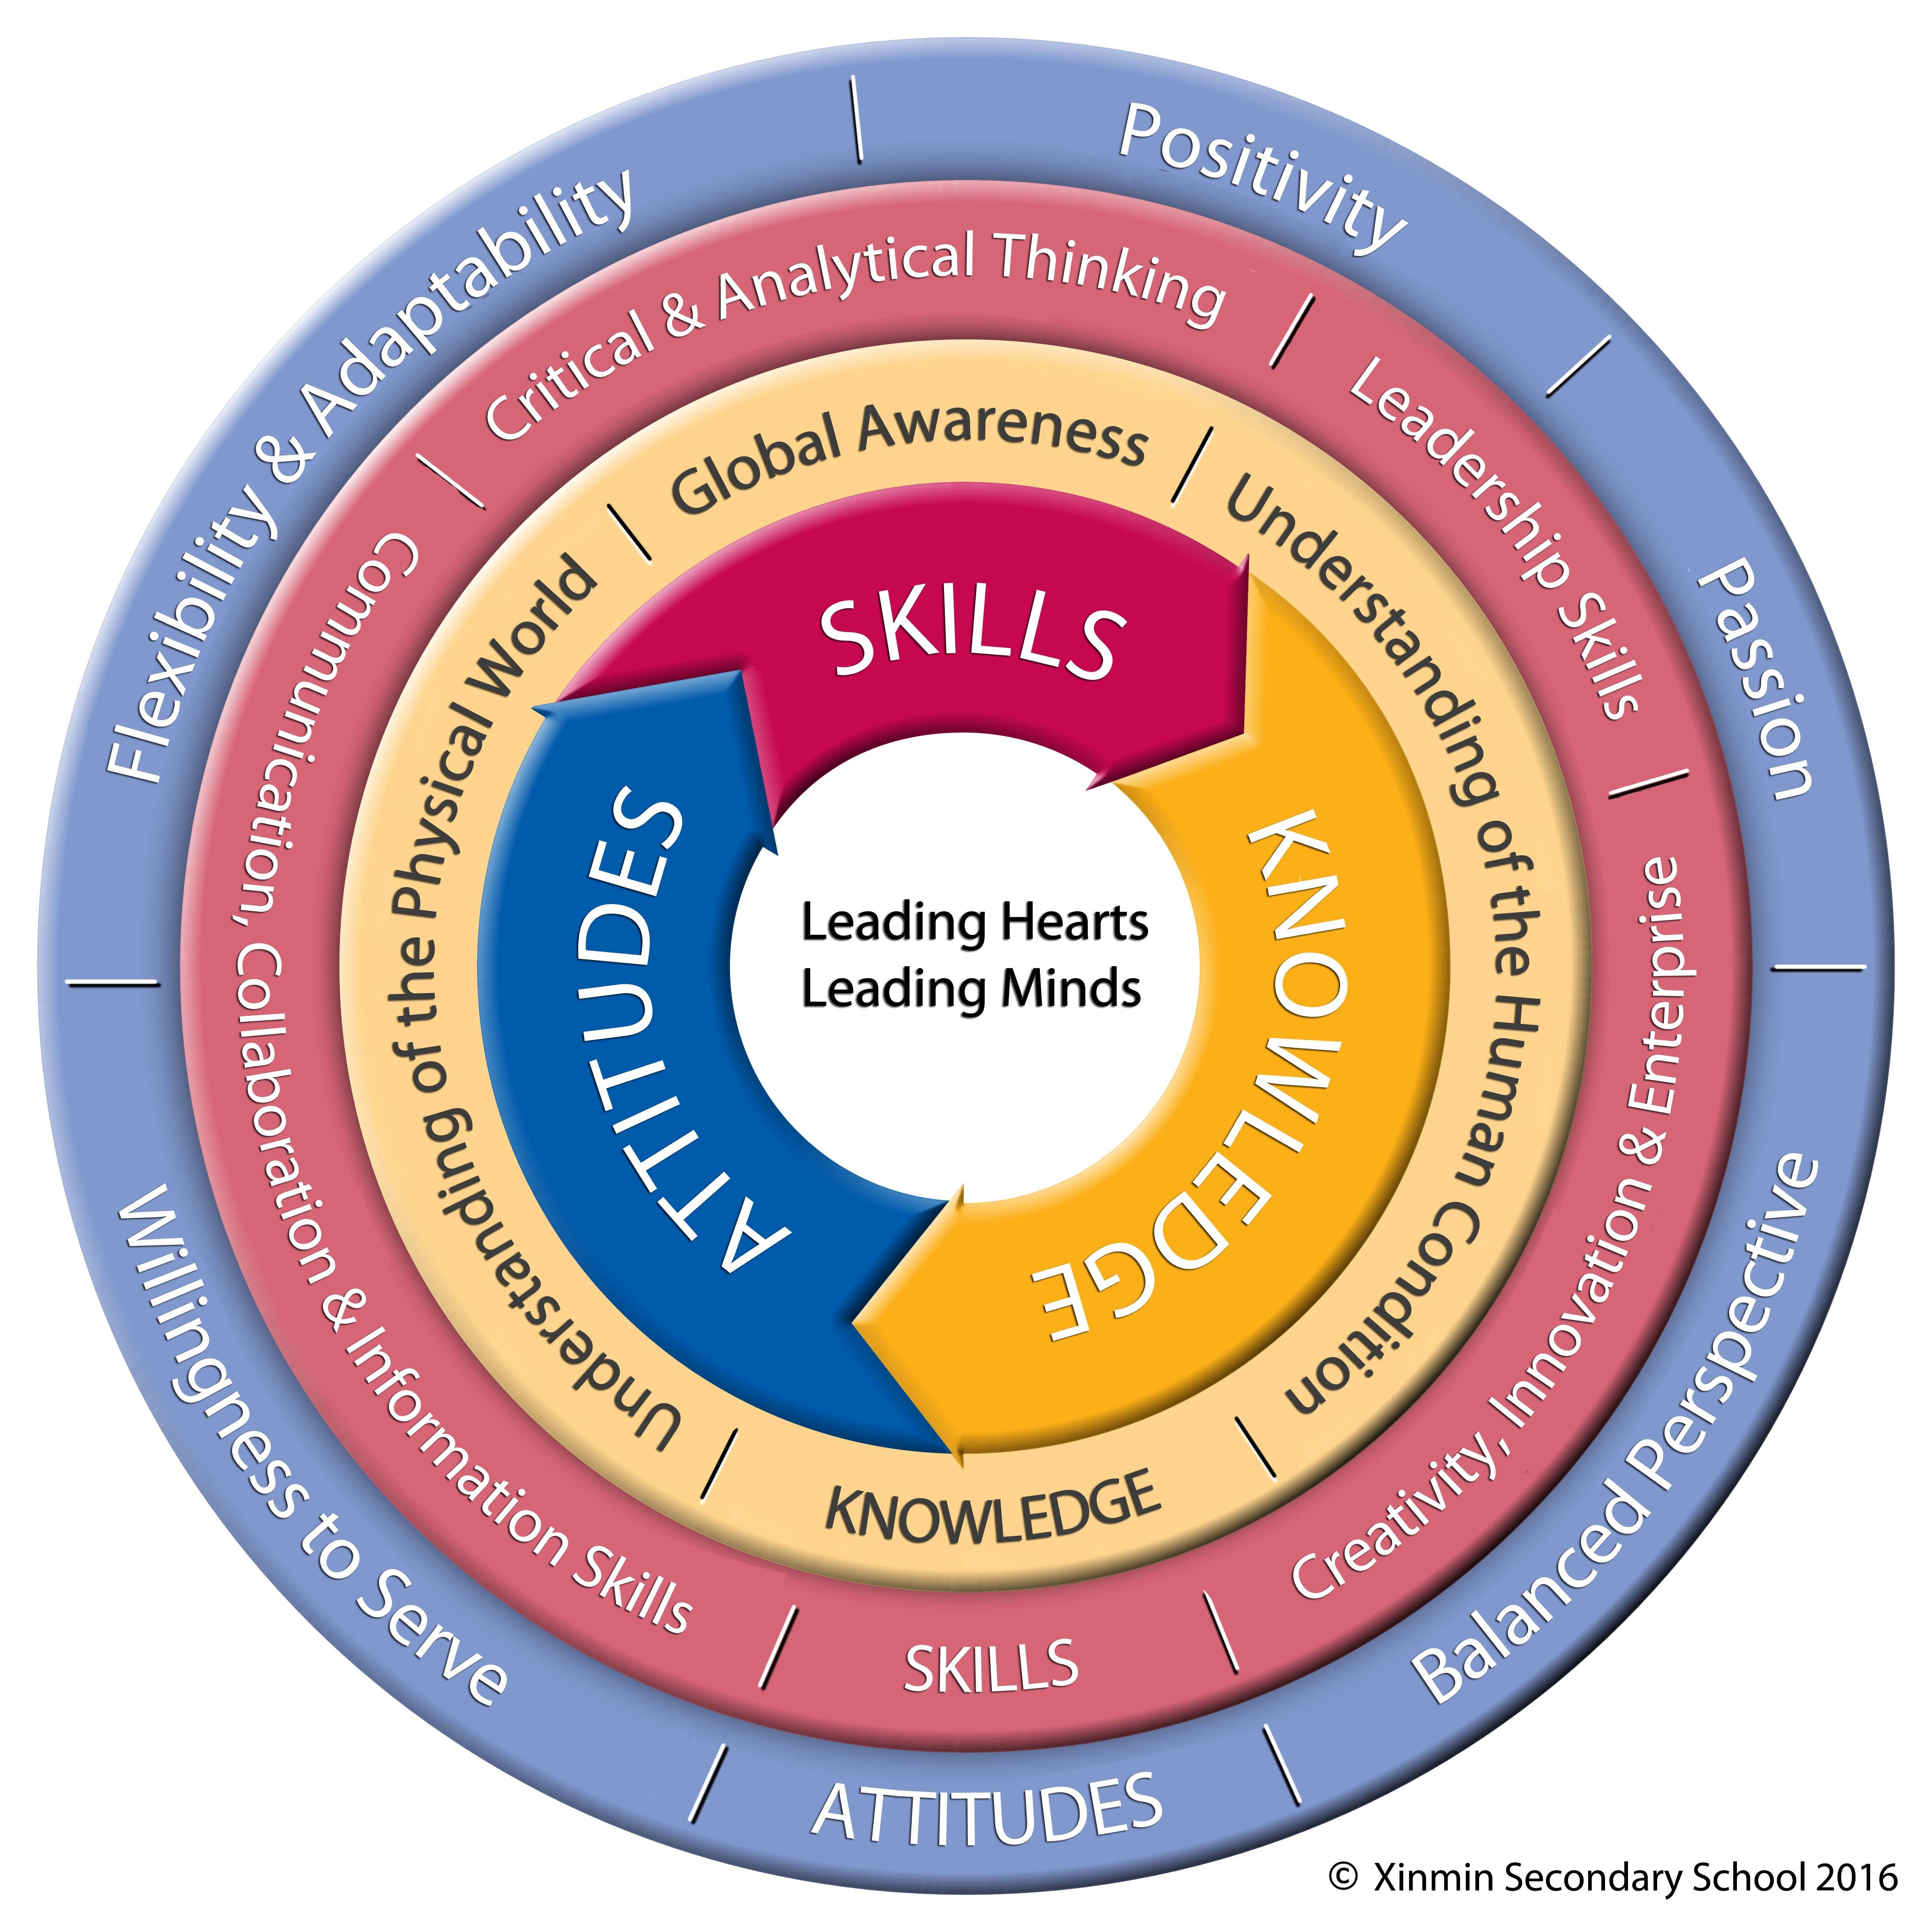 curriculum framework The standards of learning and curriculum framework comprise the mathematics content that teachers in virginia are expected to teach and students are expected to learn test blueprints provide information on how sol assessments and vmast assessments are constructed.